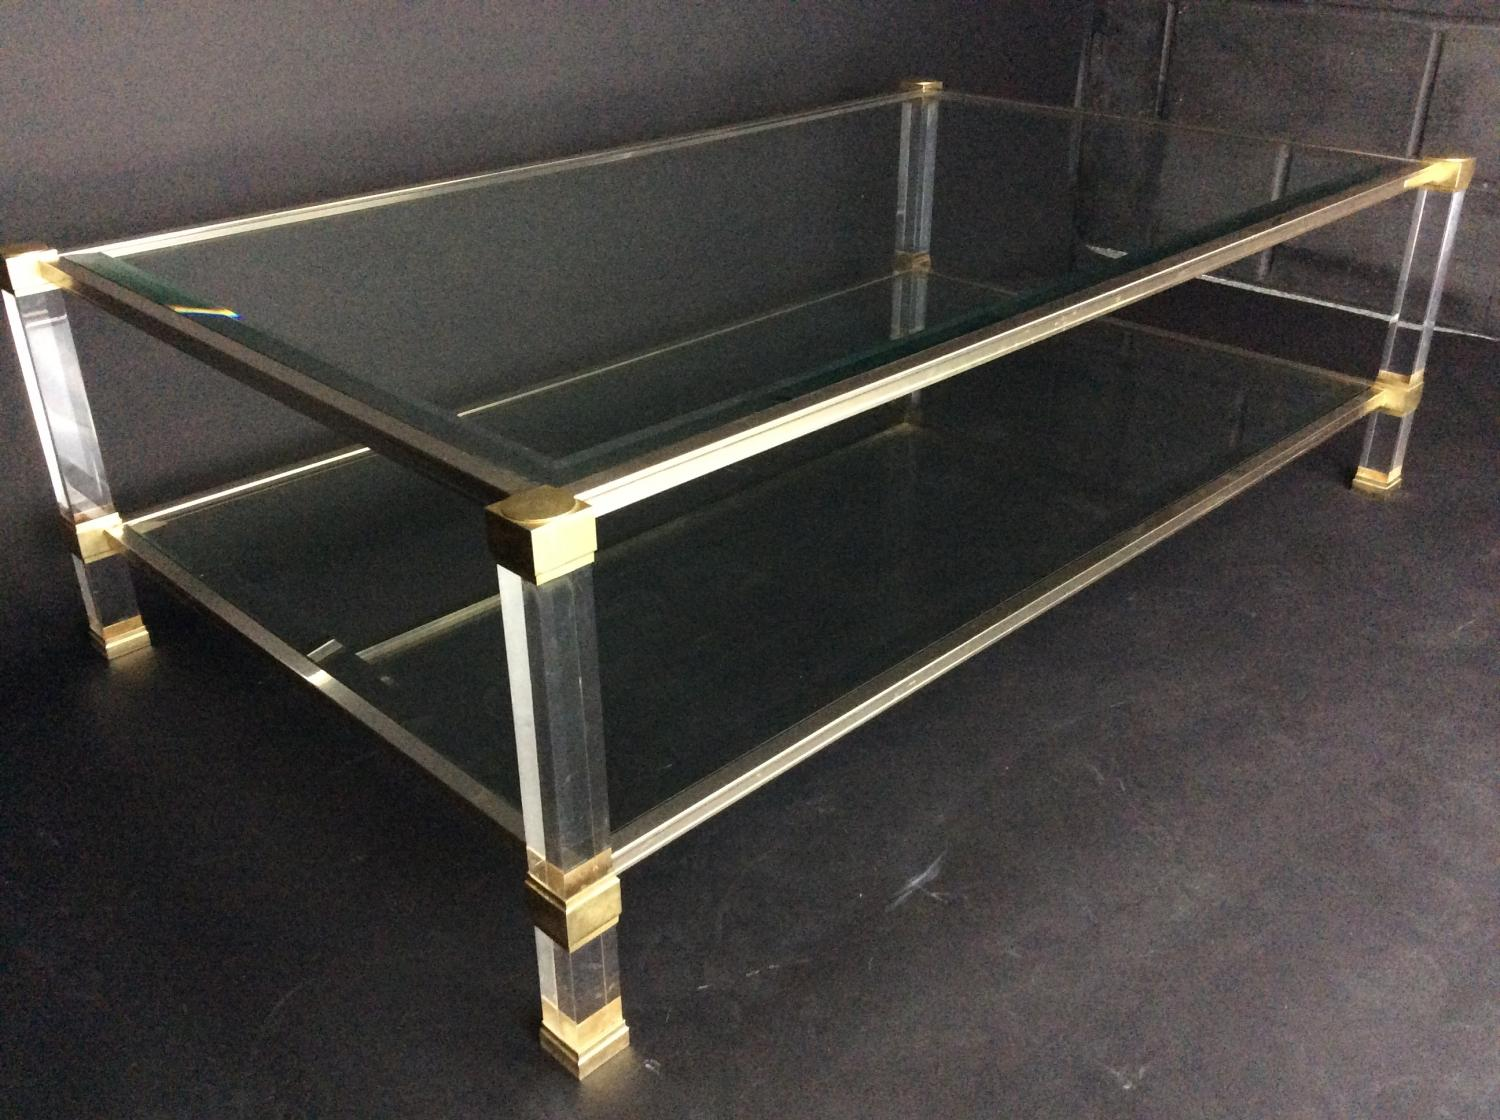 Pierre vandel brass lucite glass coffee table in sold recently for Lucite and brass coffee table